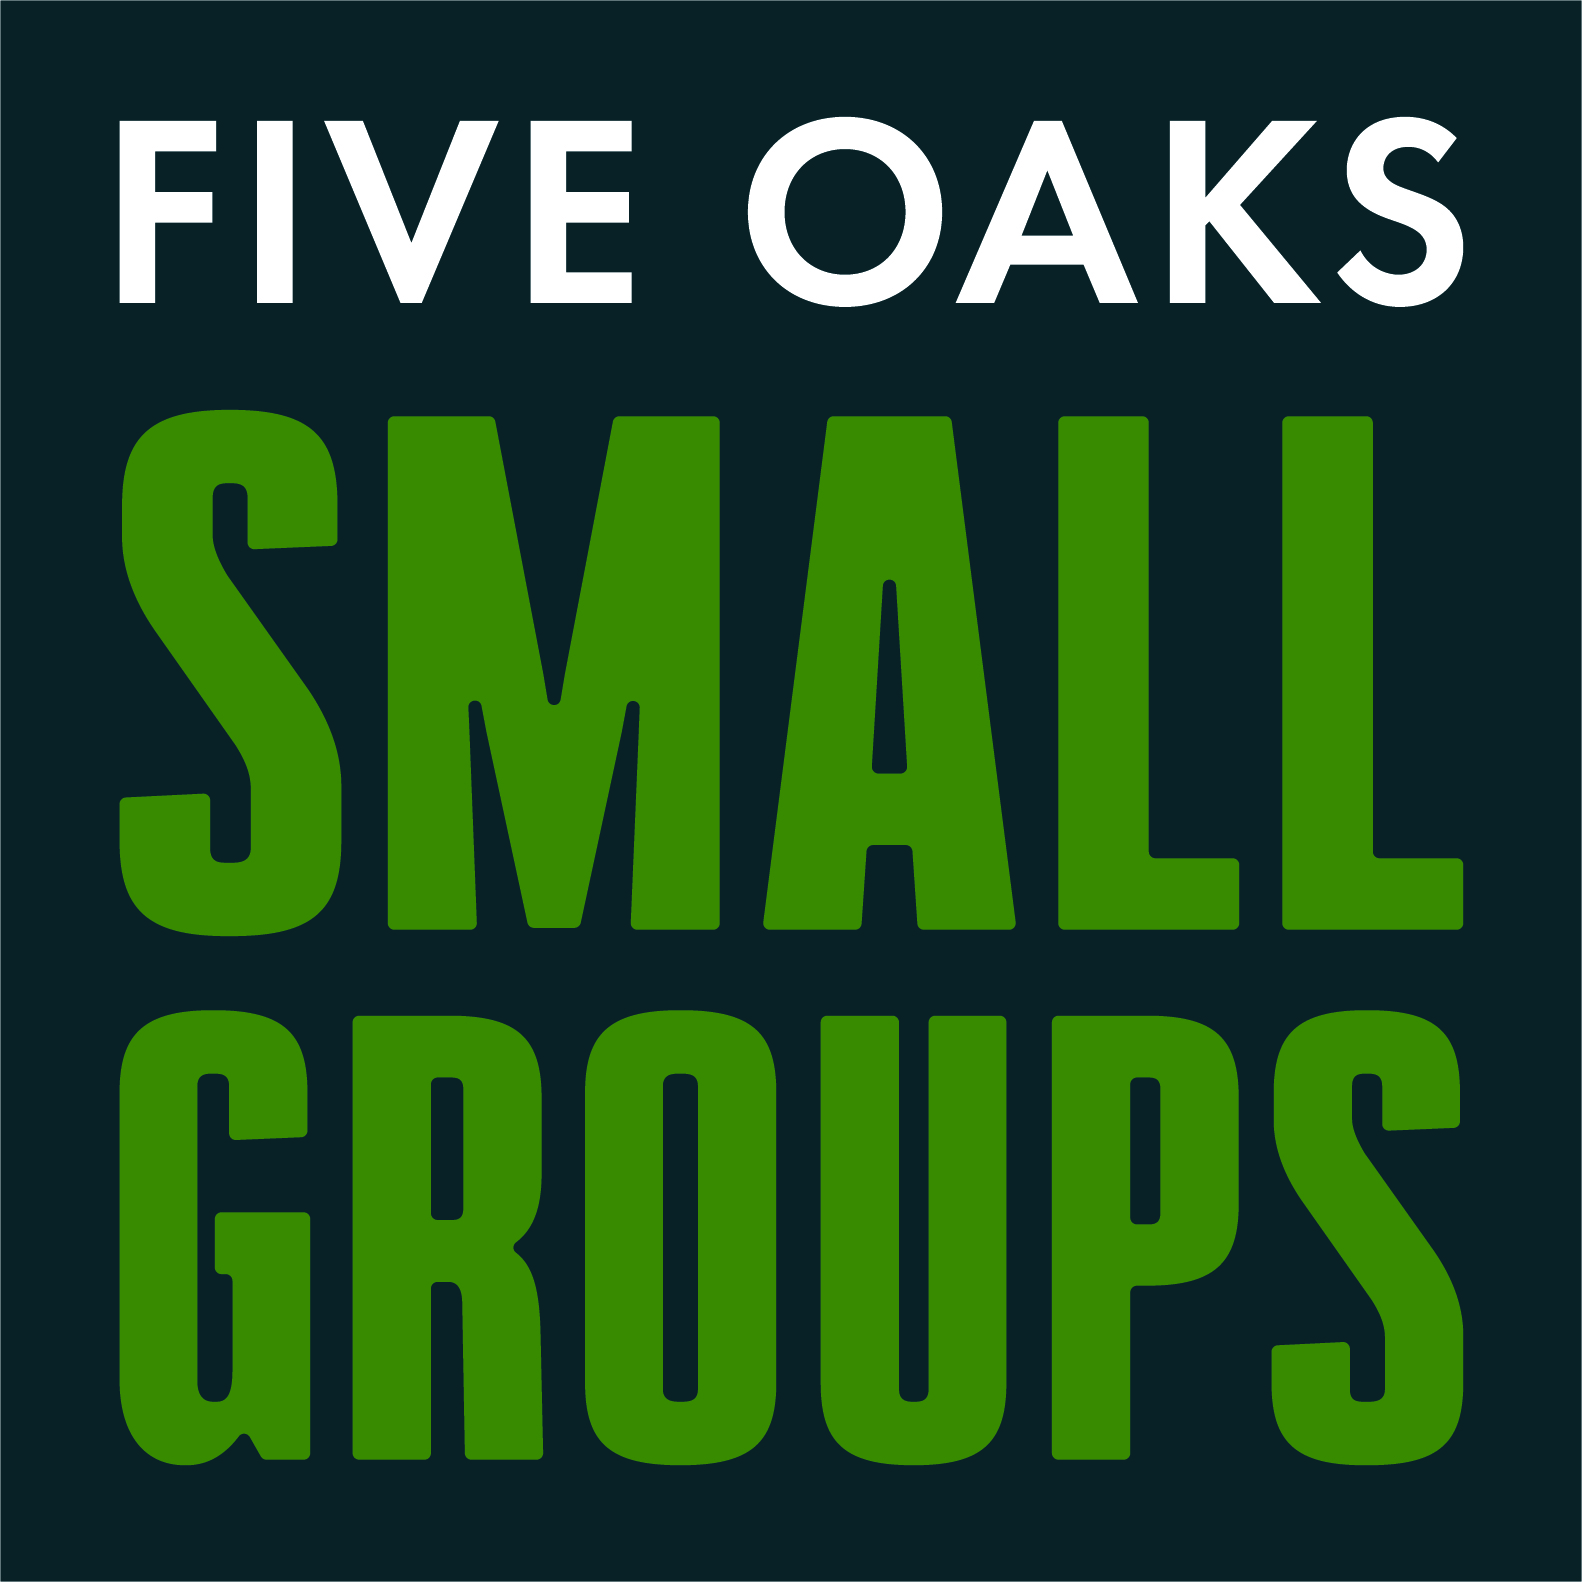 FiveOaksSmallGroups-2017.jpg